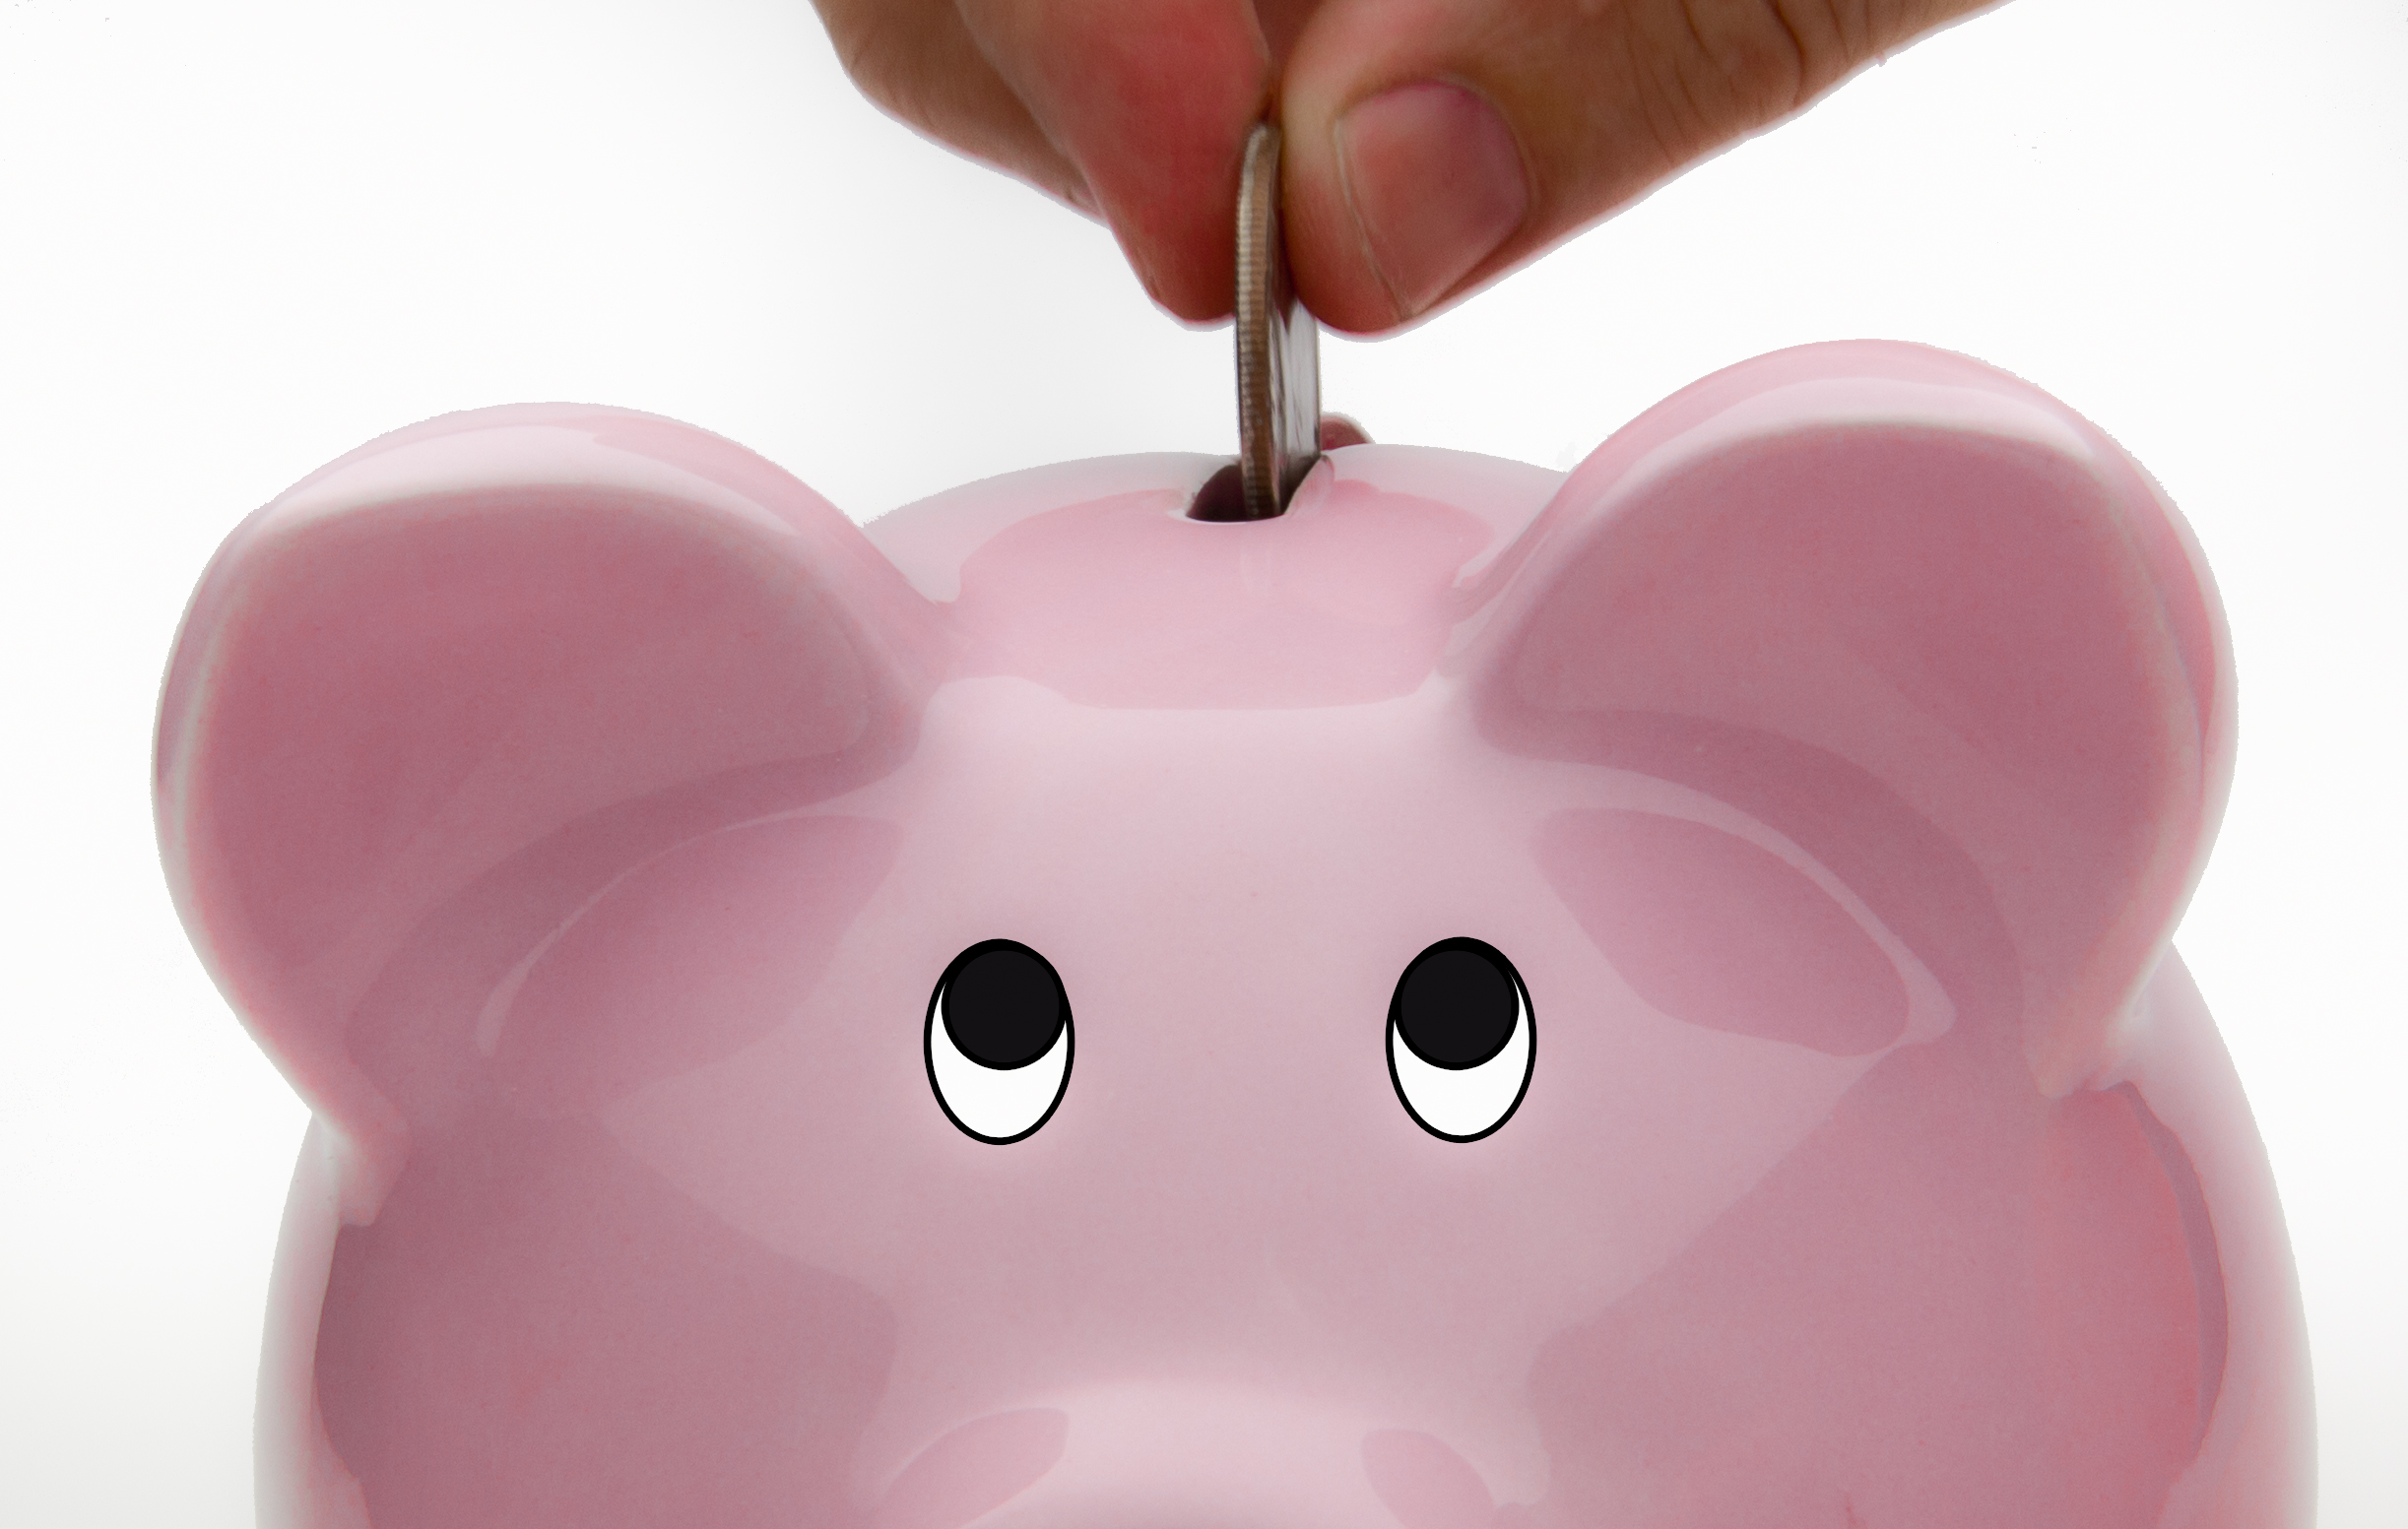 Cool Money Bank Deposit Into Piggy Bank Savings Account Flickr Photo